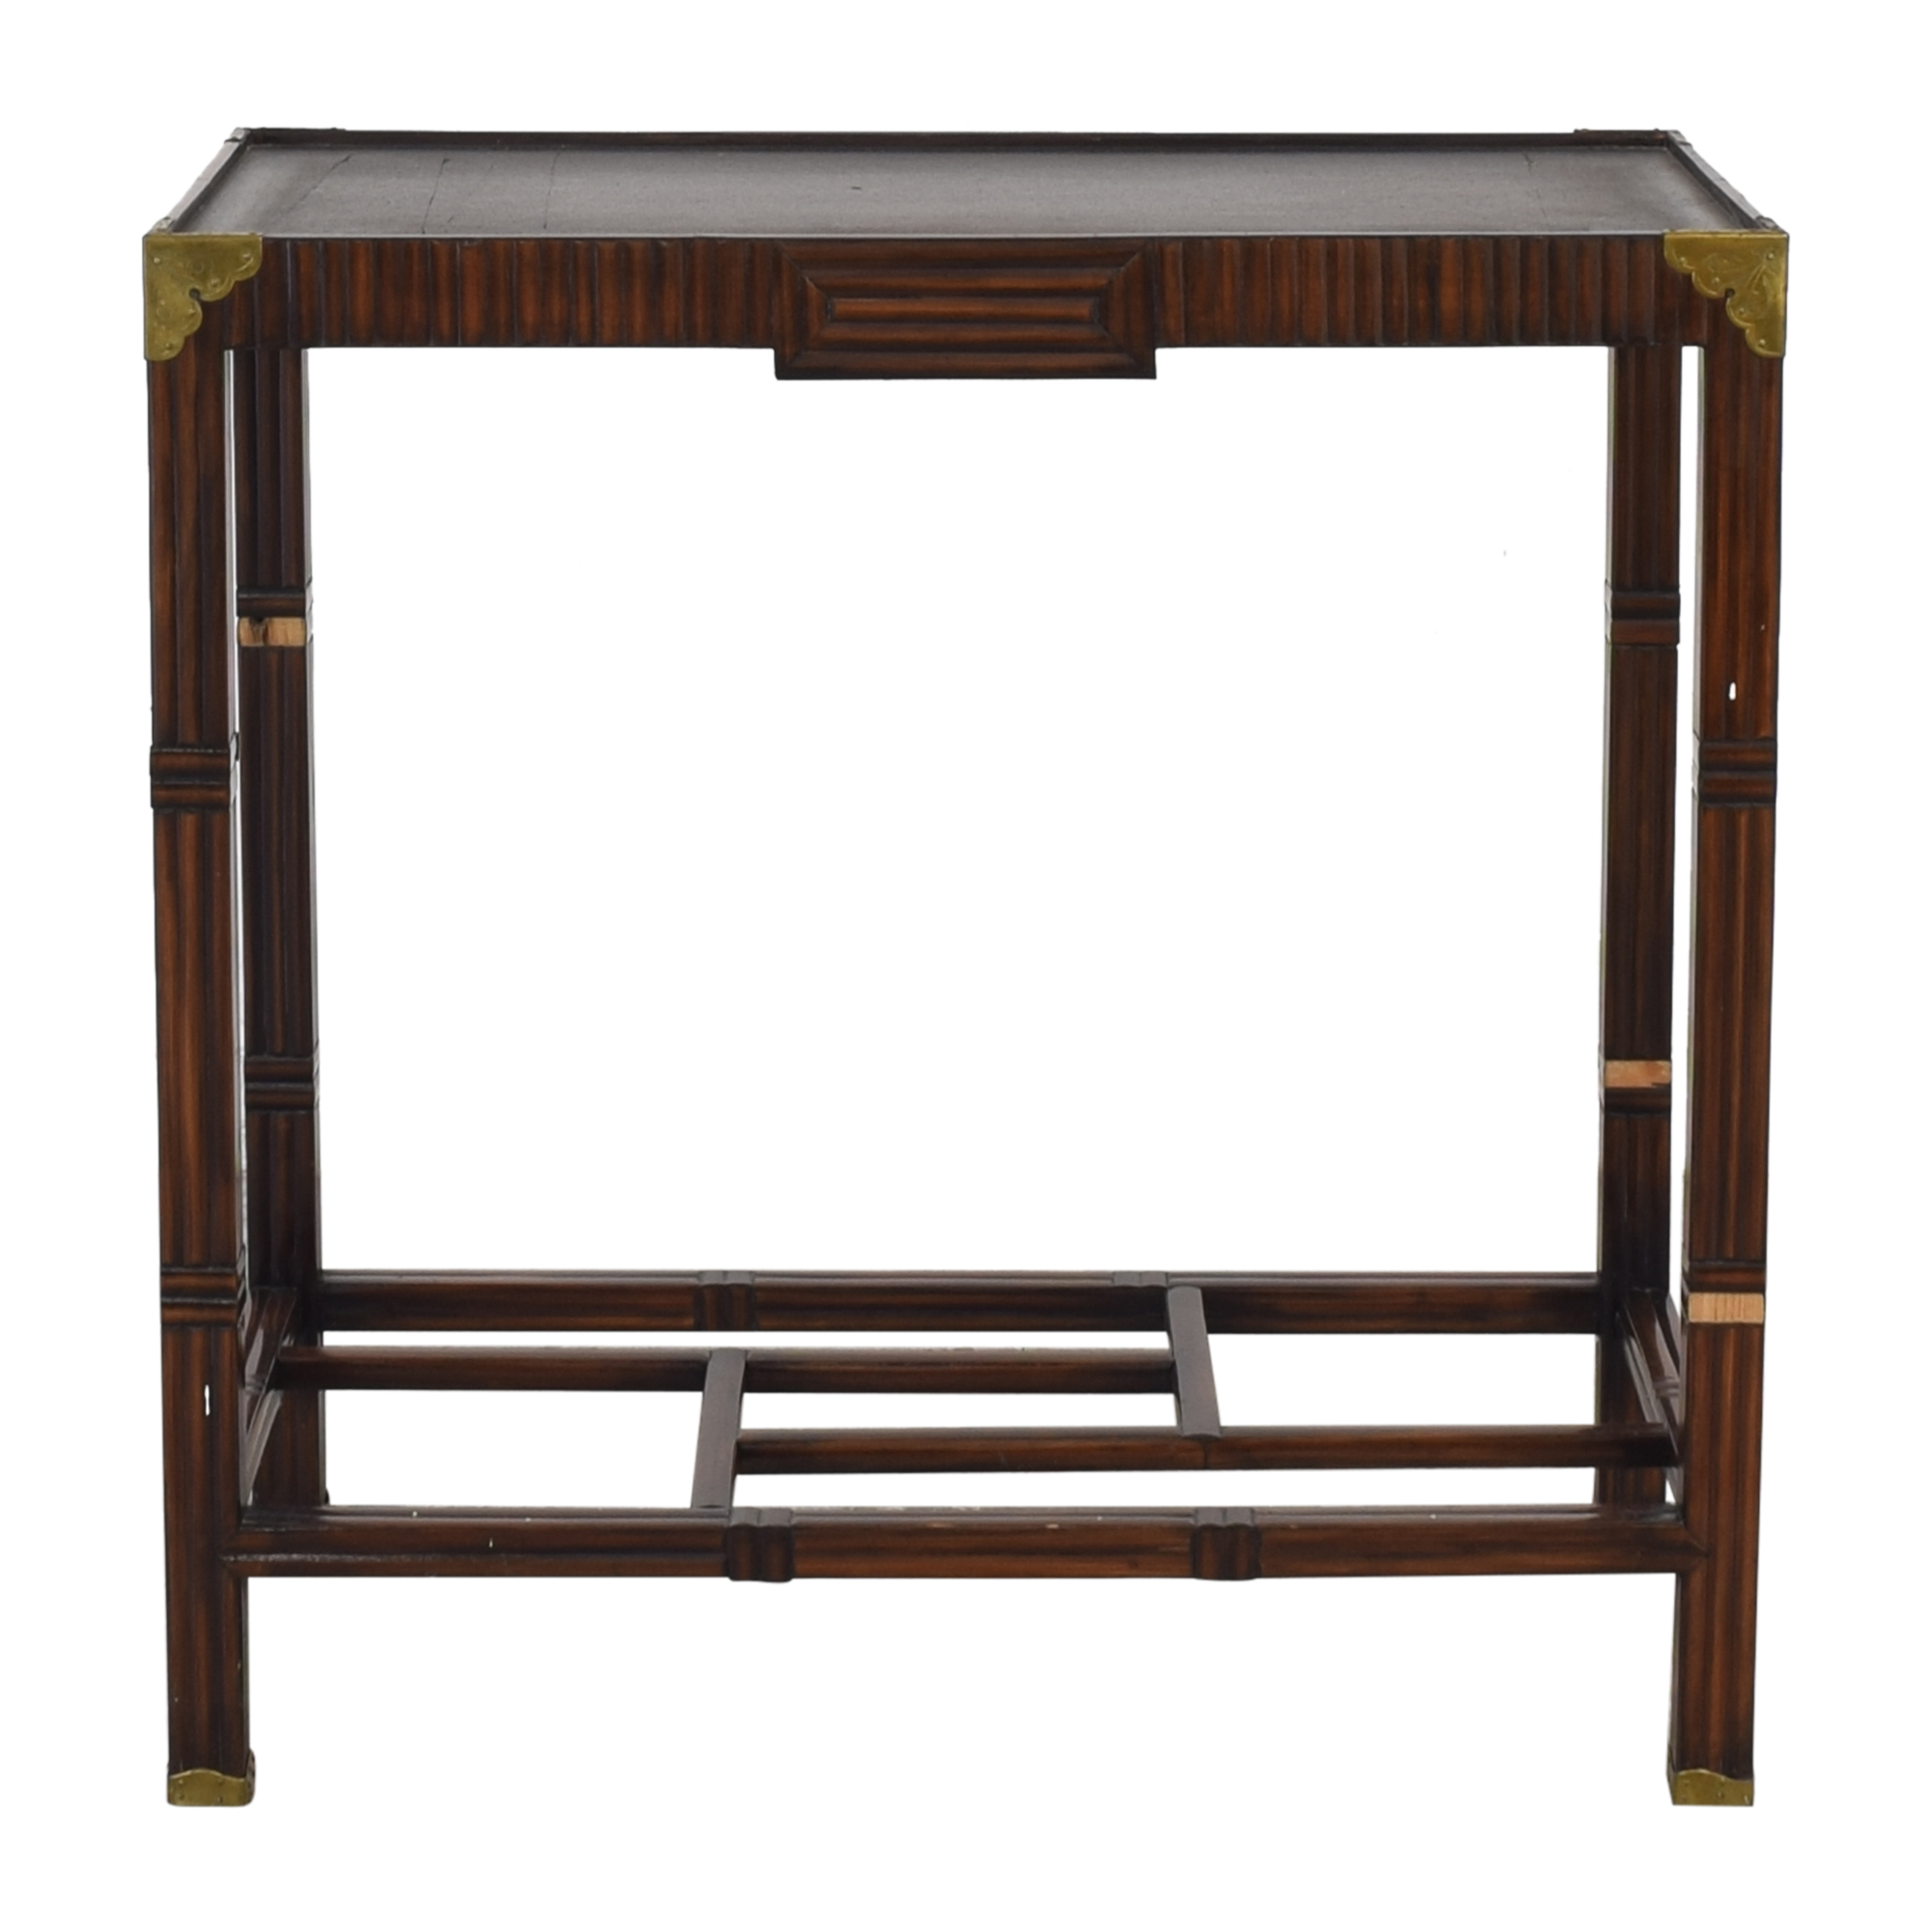 buy  Custom Campaign Style Accent Table online